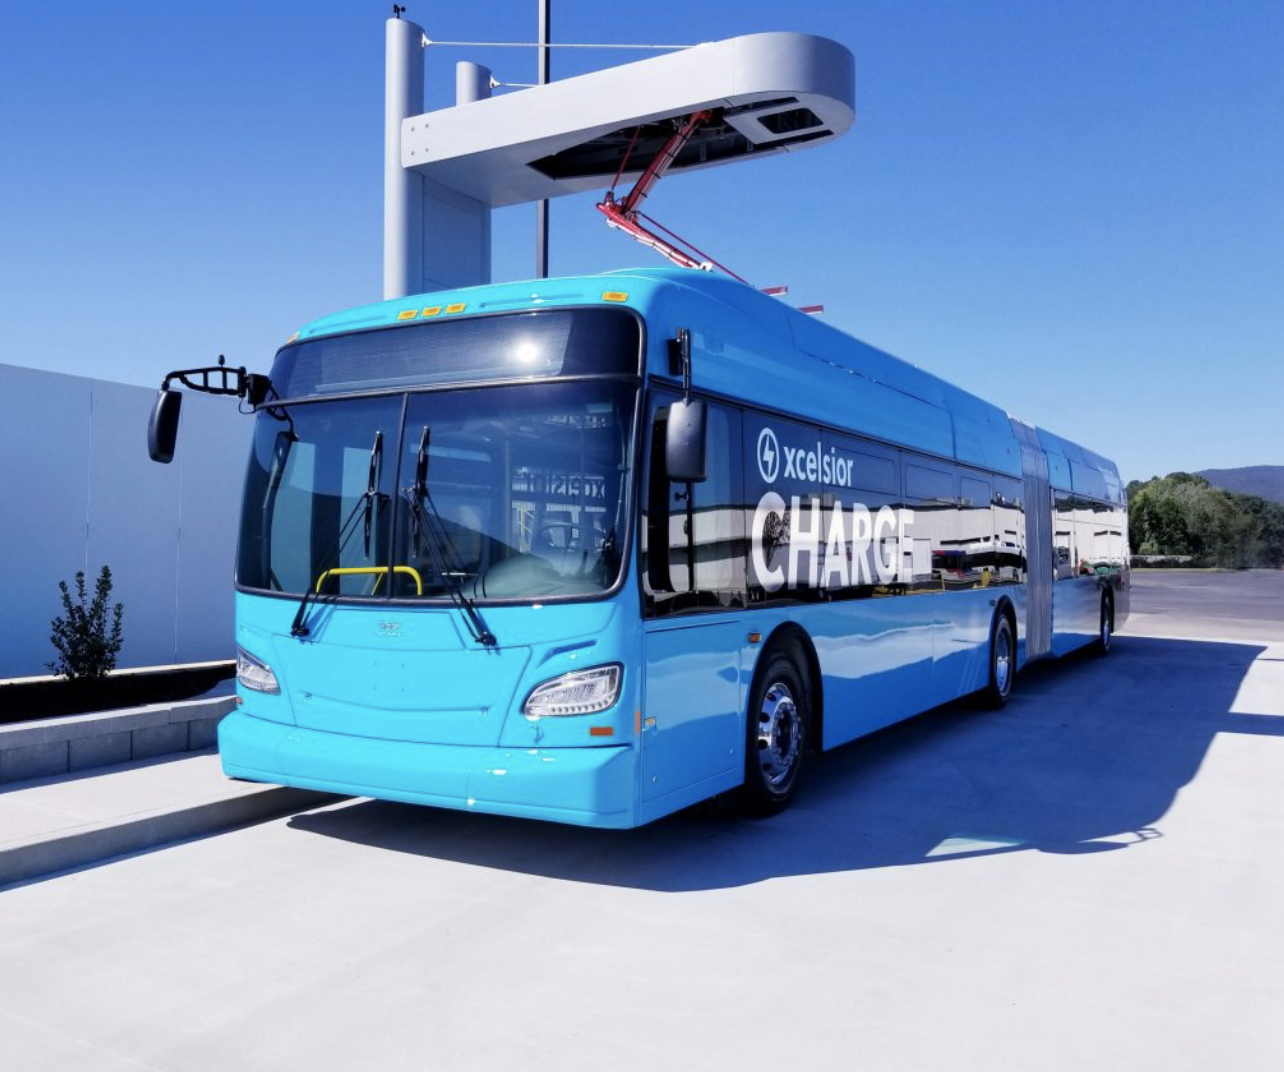 New Flyer Robotic Research To Improve Public Transit Using Autonomous Bus Technology Inside Unmanned Systems